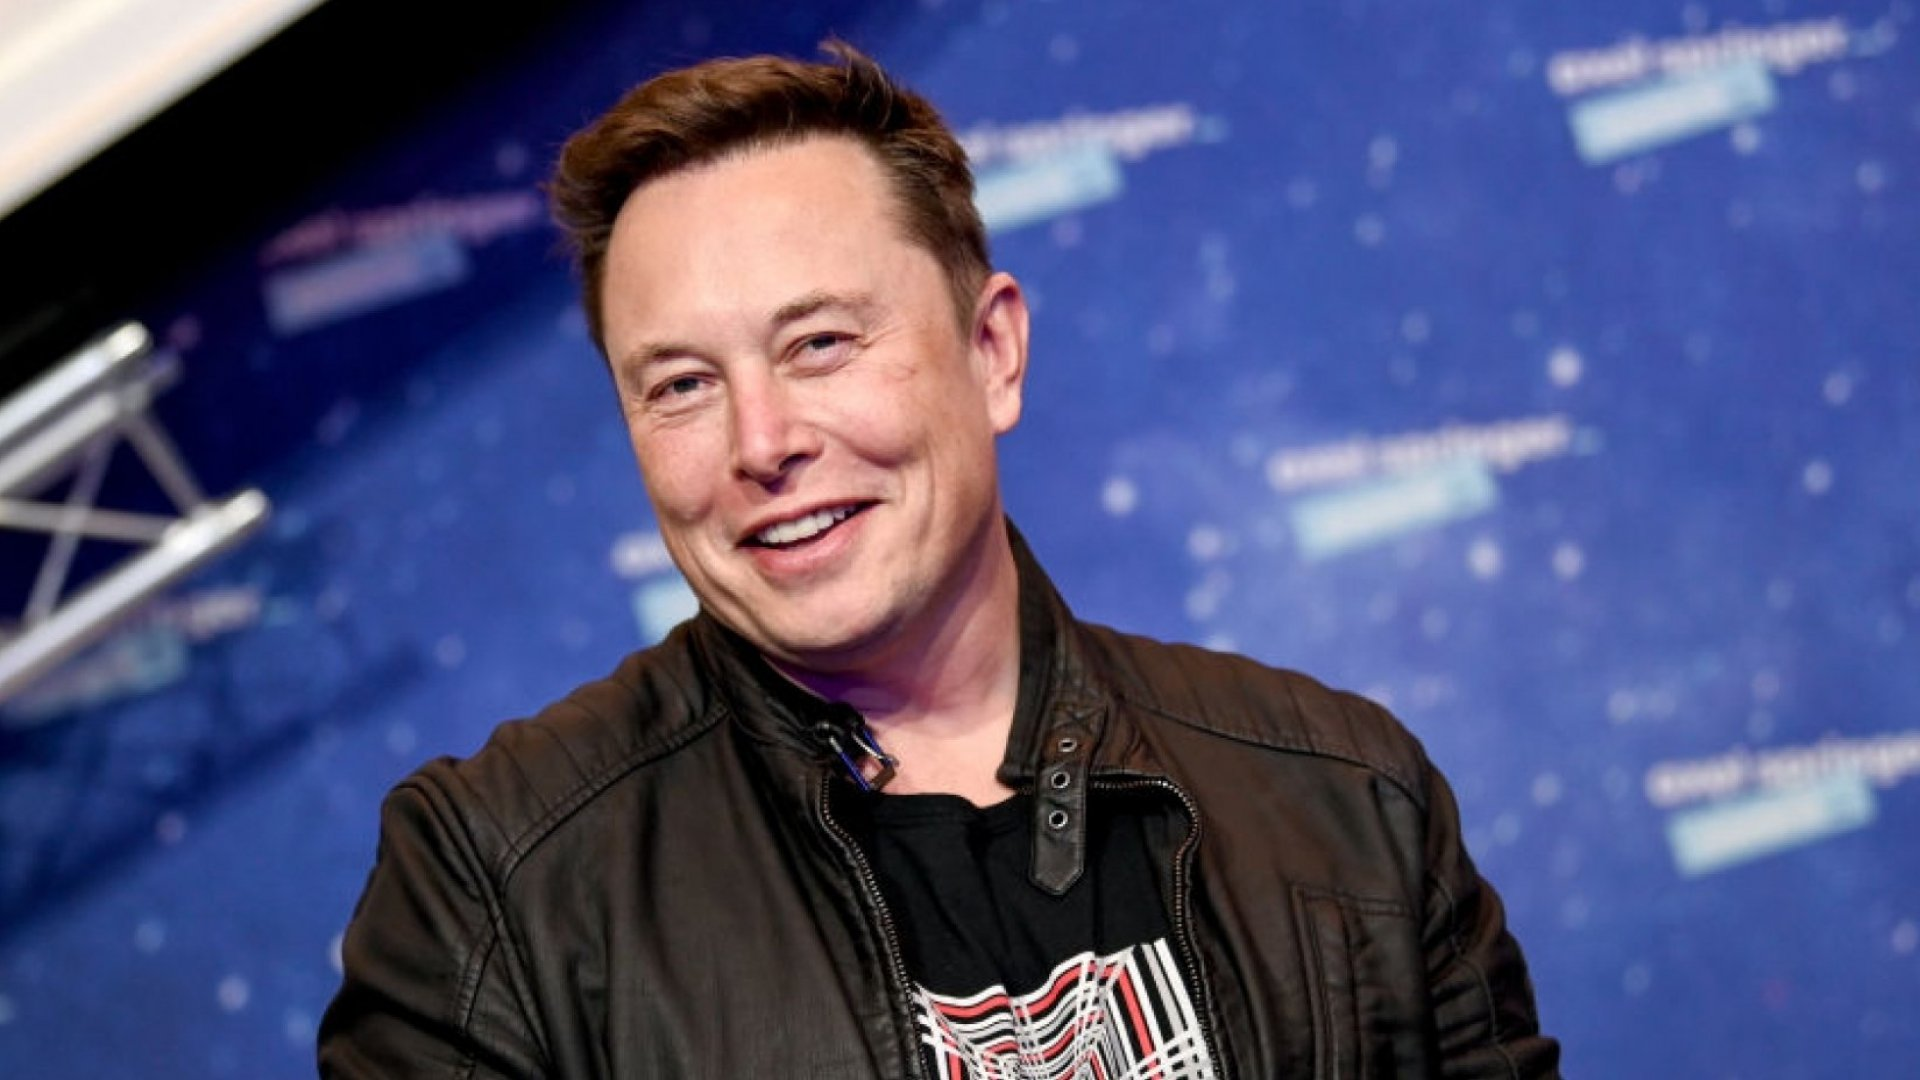 Elon Musk Just Sent an Email to All Tesla Employees and It Shows Why He's a Brilliant Leader